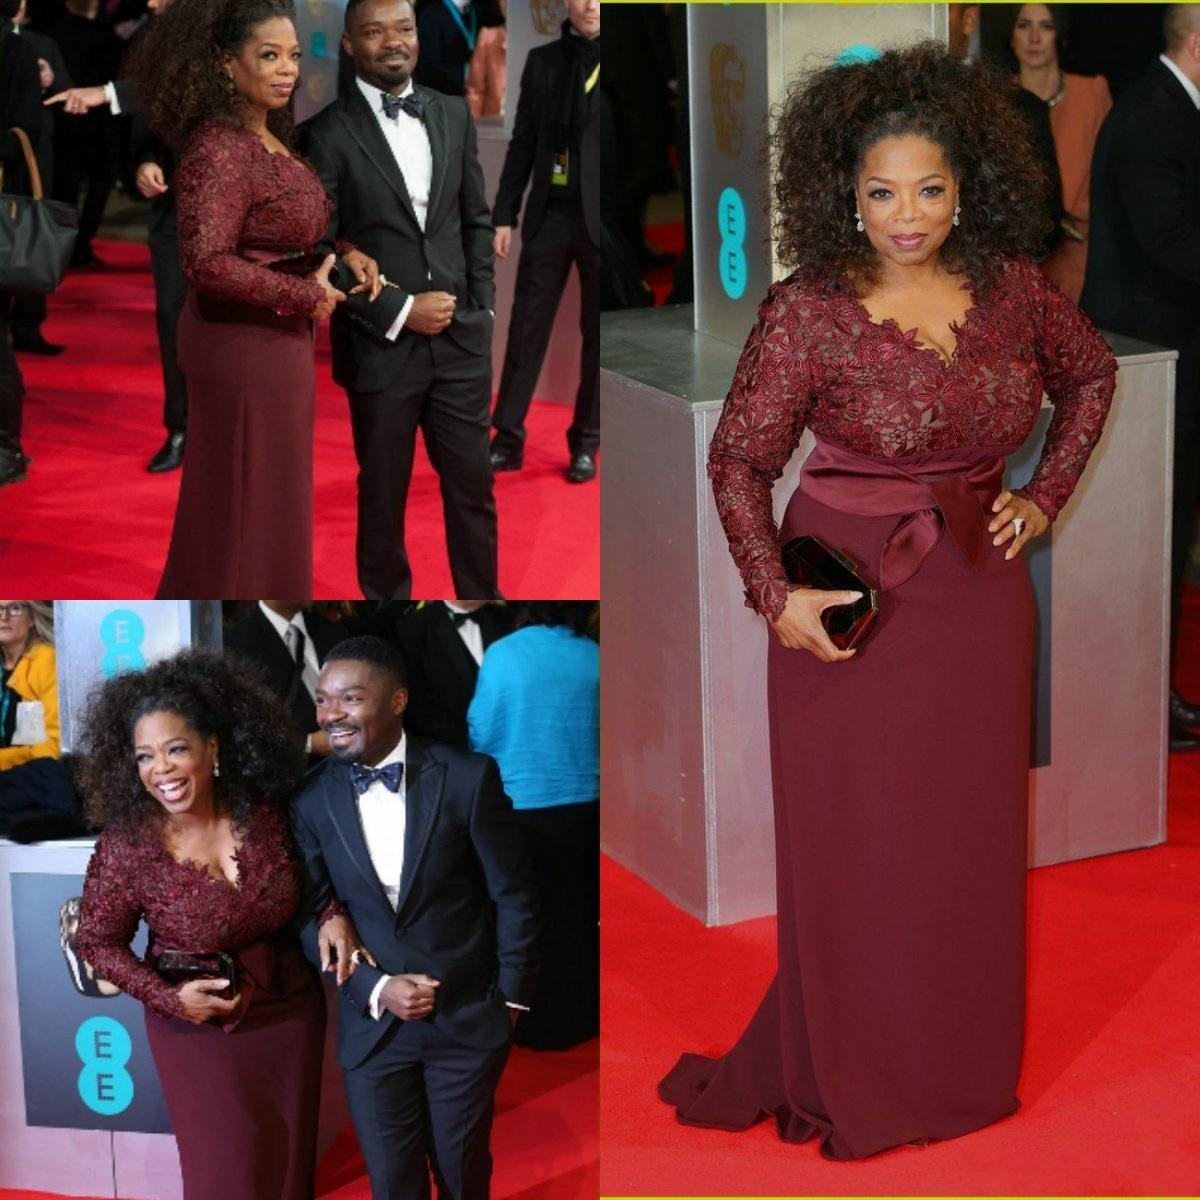 Oprah Winfrey Burgund Long Sleeves Sexy Abendkleider V-Ausschnitt Sheer Spitze Mantel Plus Size Celebrity Prom Red Carpet Kleider